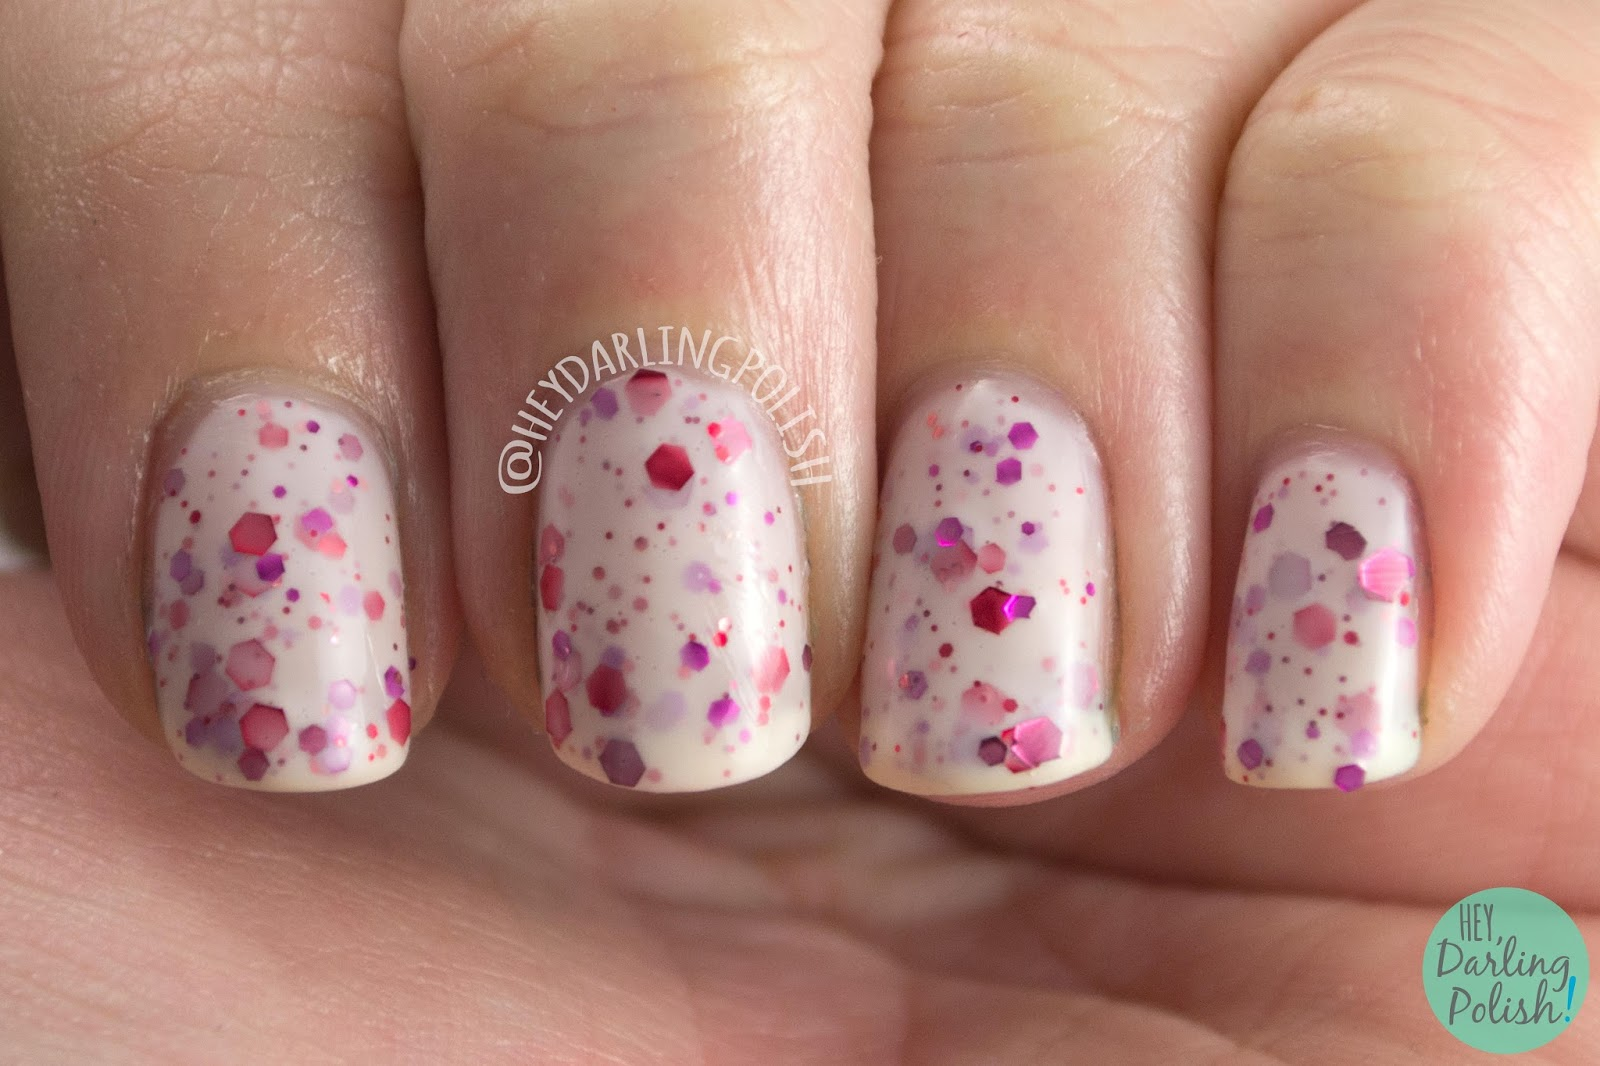 nails, nail polish, kbshimmer, pink, indie polish, falling for hue, glitter crelly,